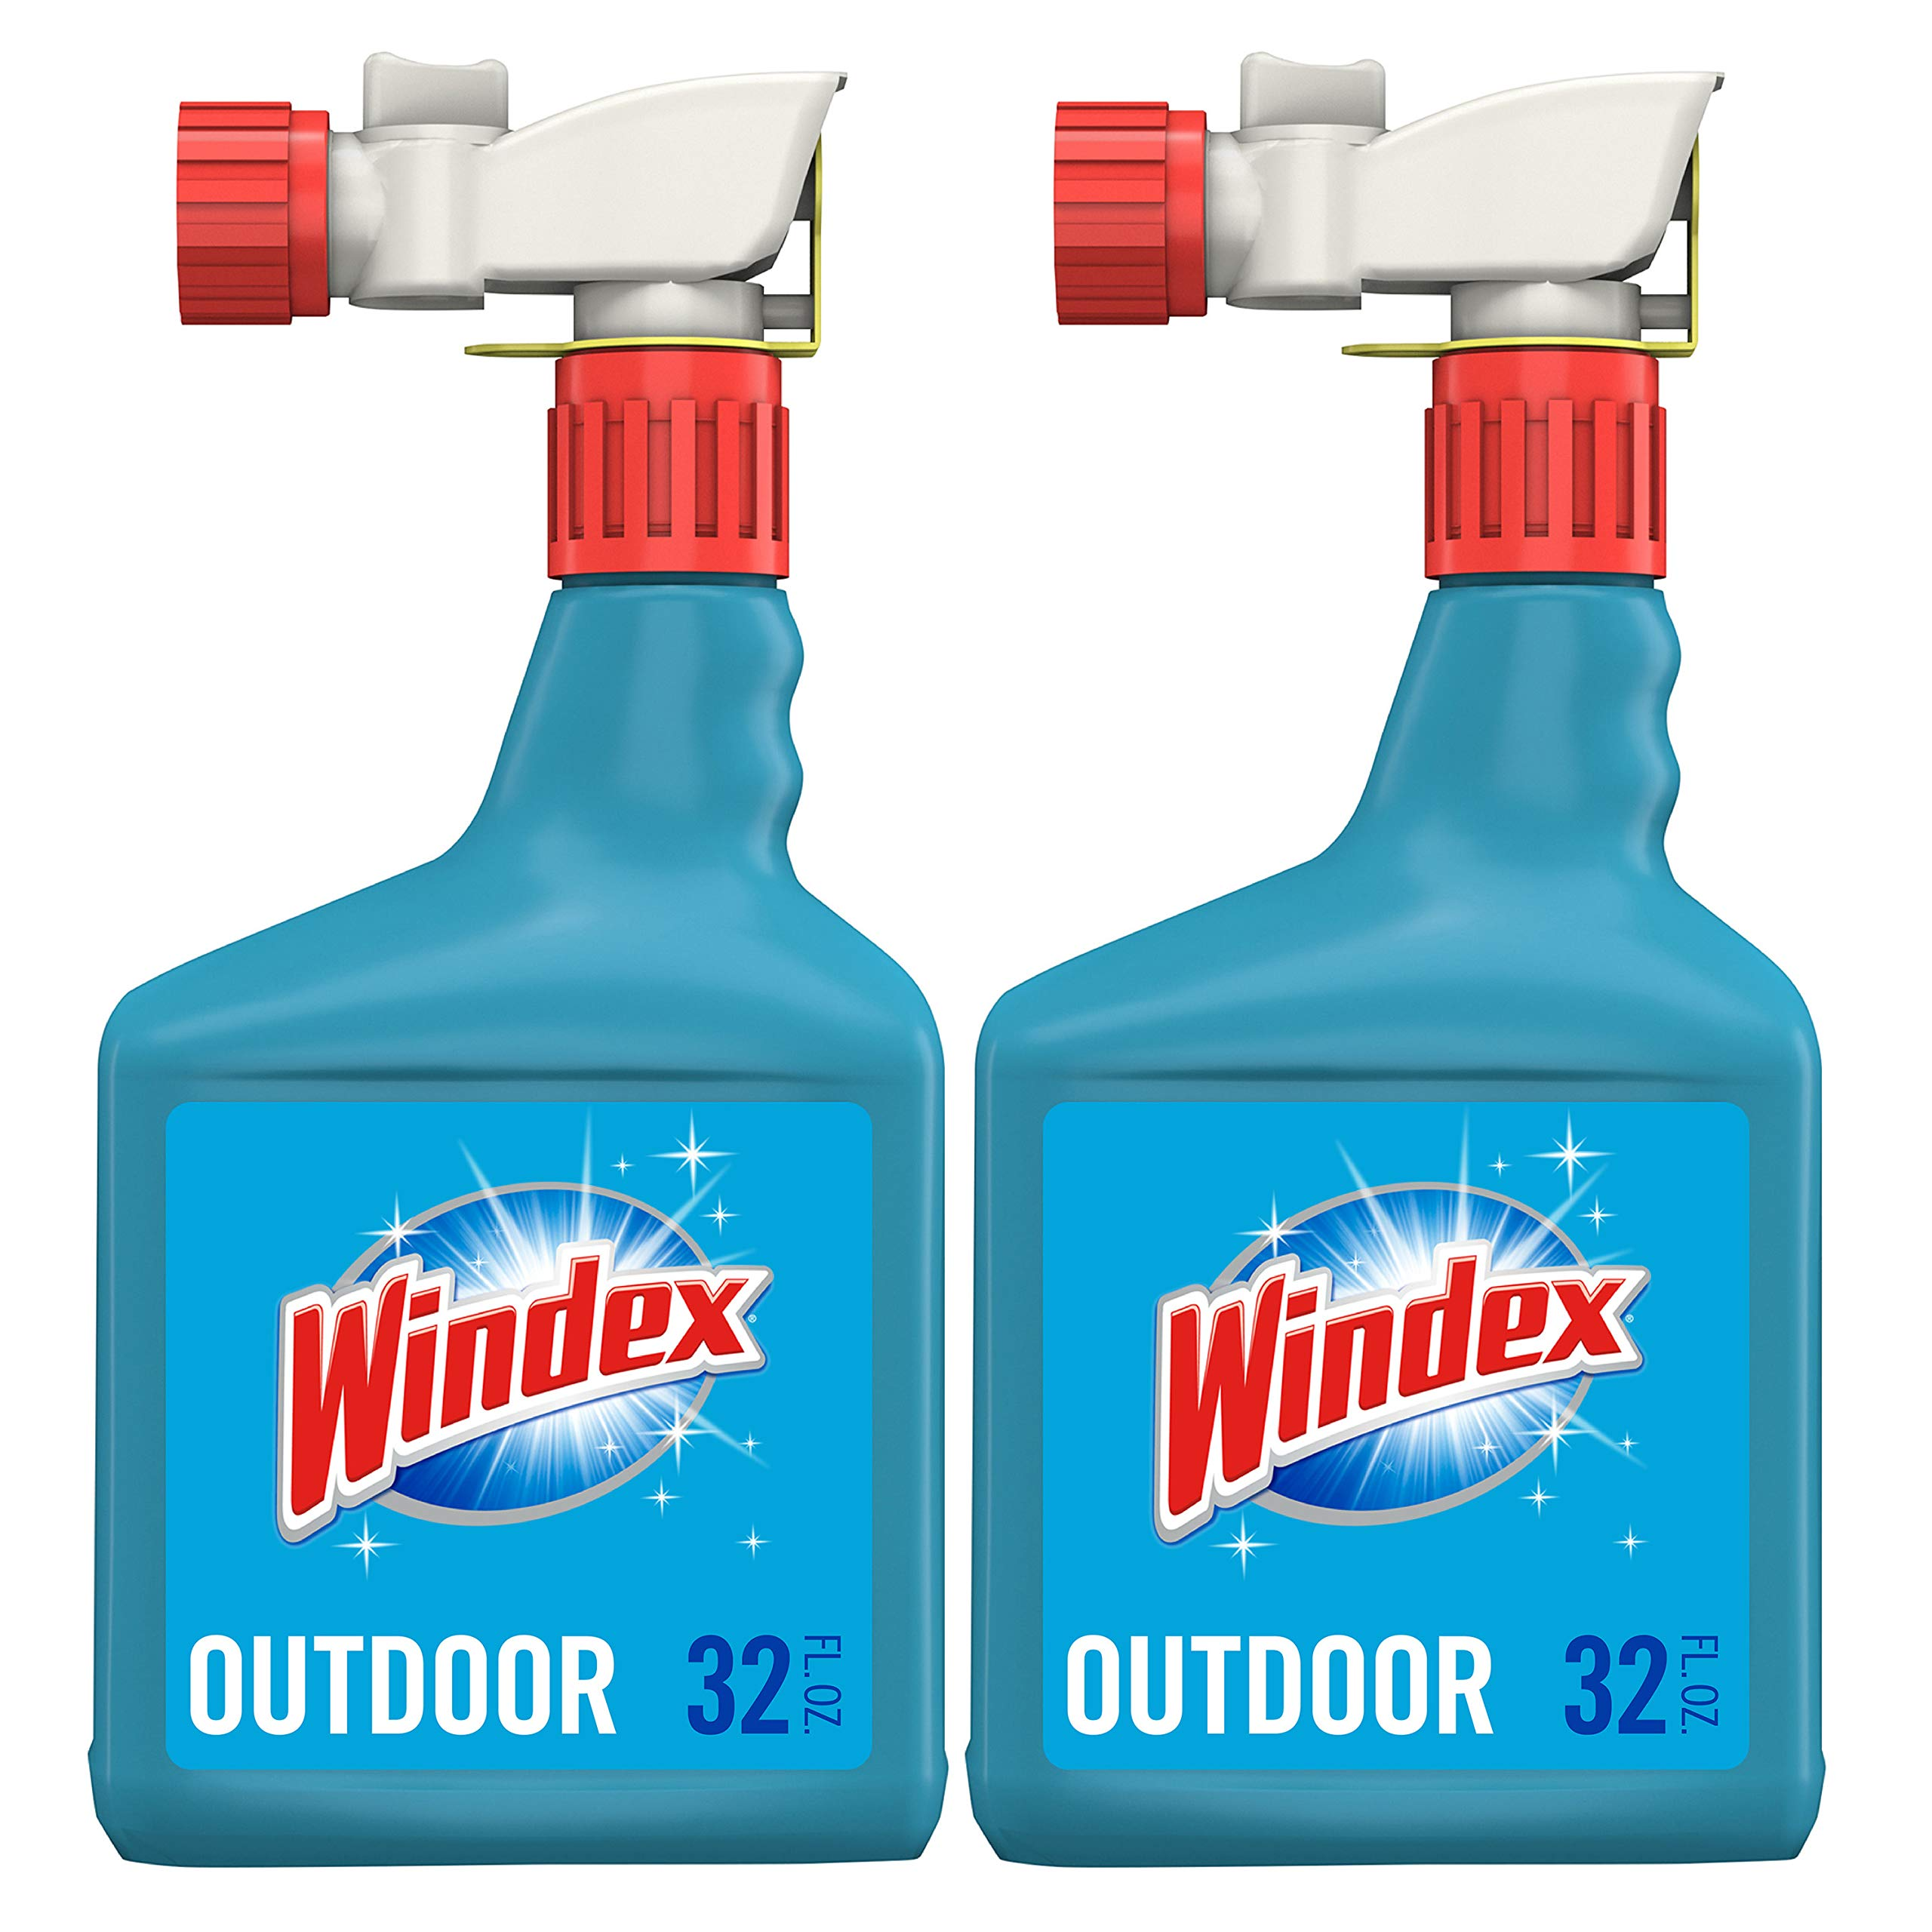 Windex Outdoor Glass & Patio Concentrated Cleaner, 2 ct, 32 fl oz by Windex